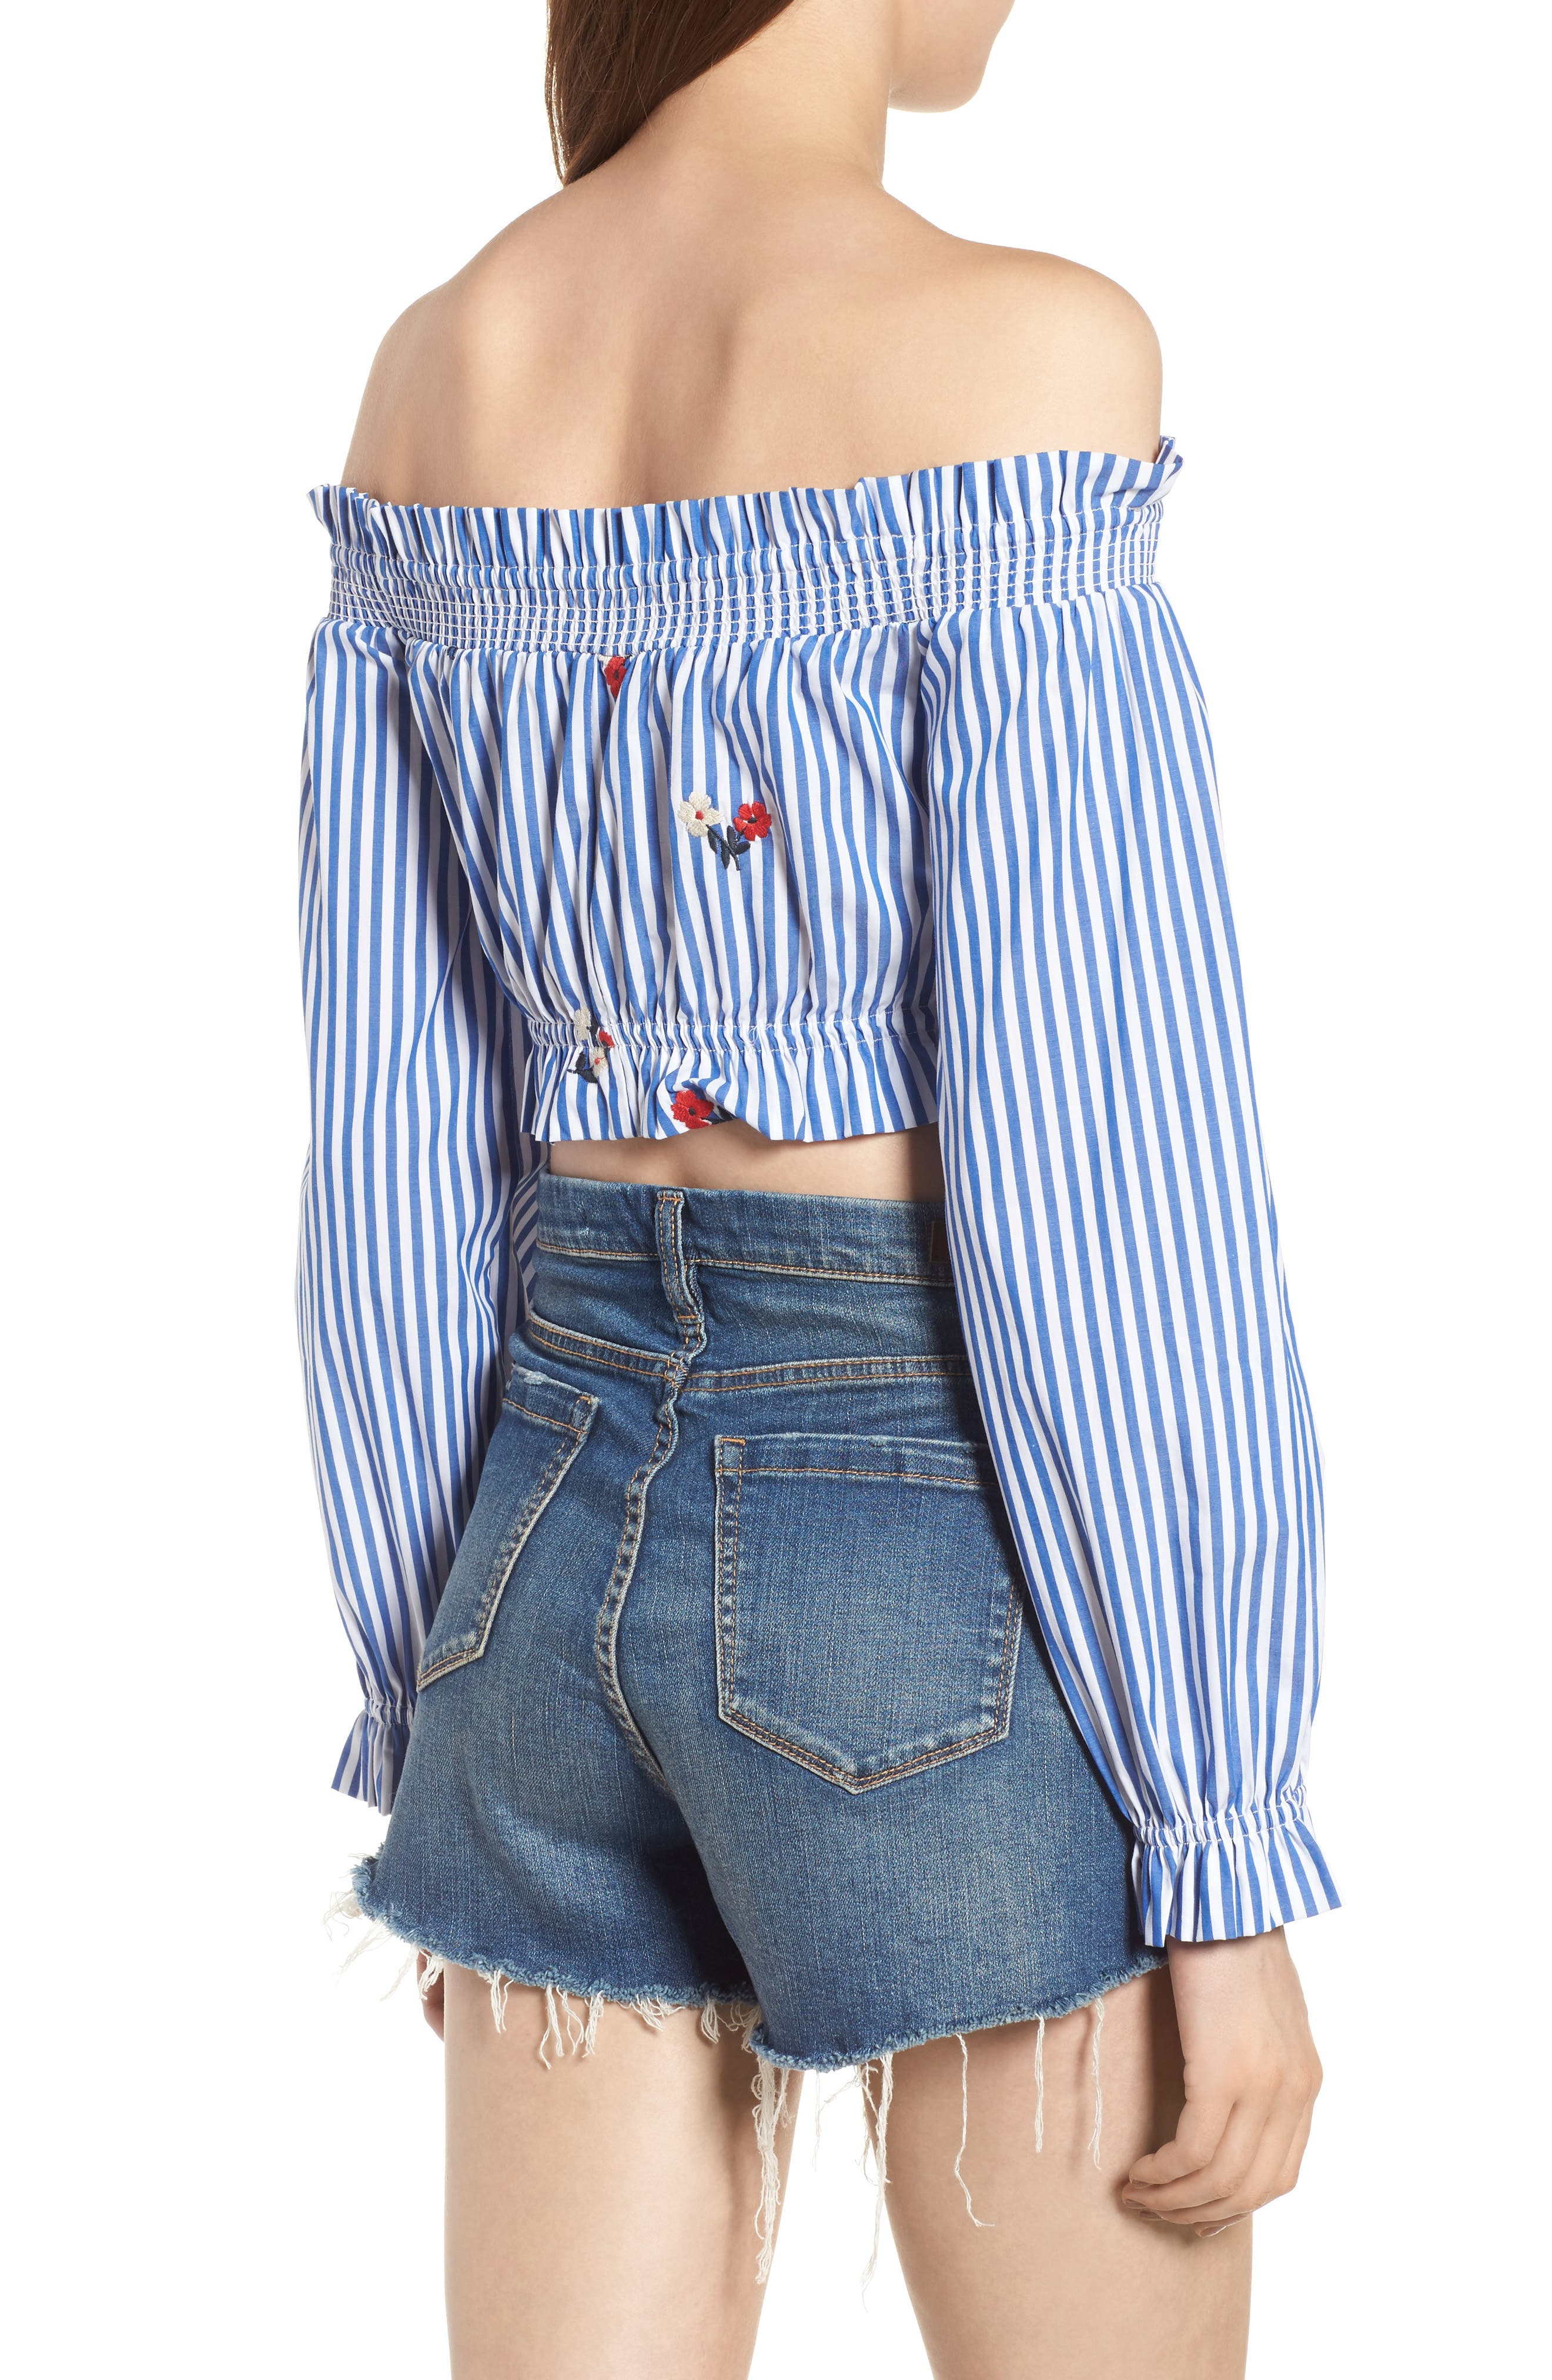 Chloe + Katie Embroidered Off the Shoulder Crop Top,                             Alternate thumbnail 2, color,                             Blue/ White Stripe